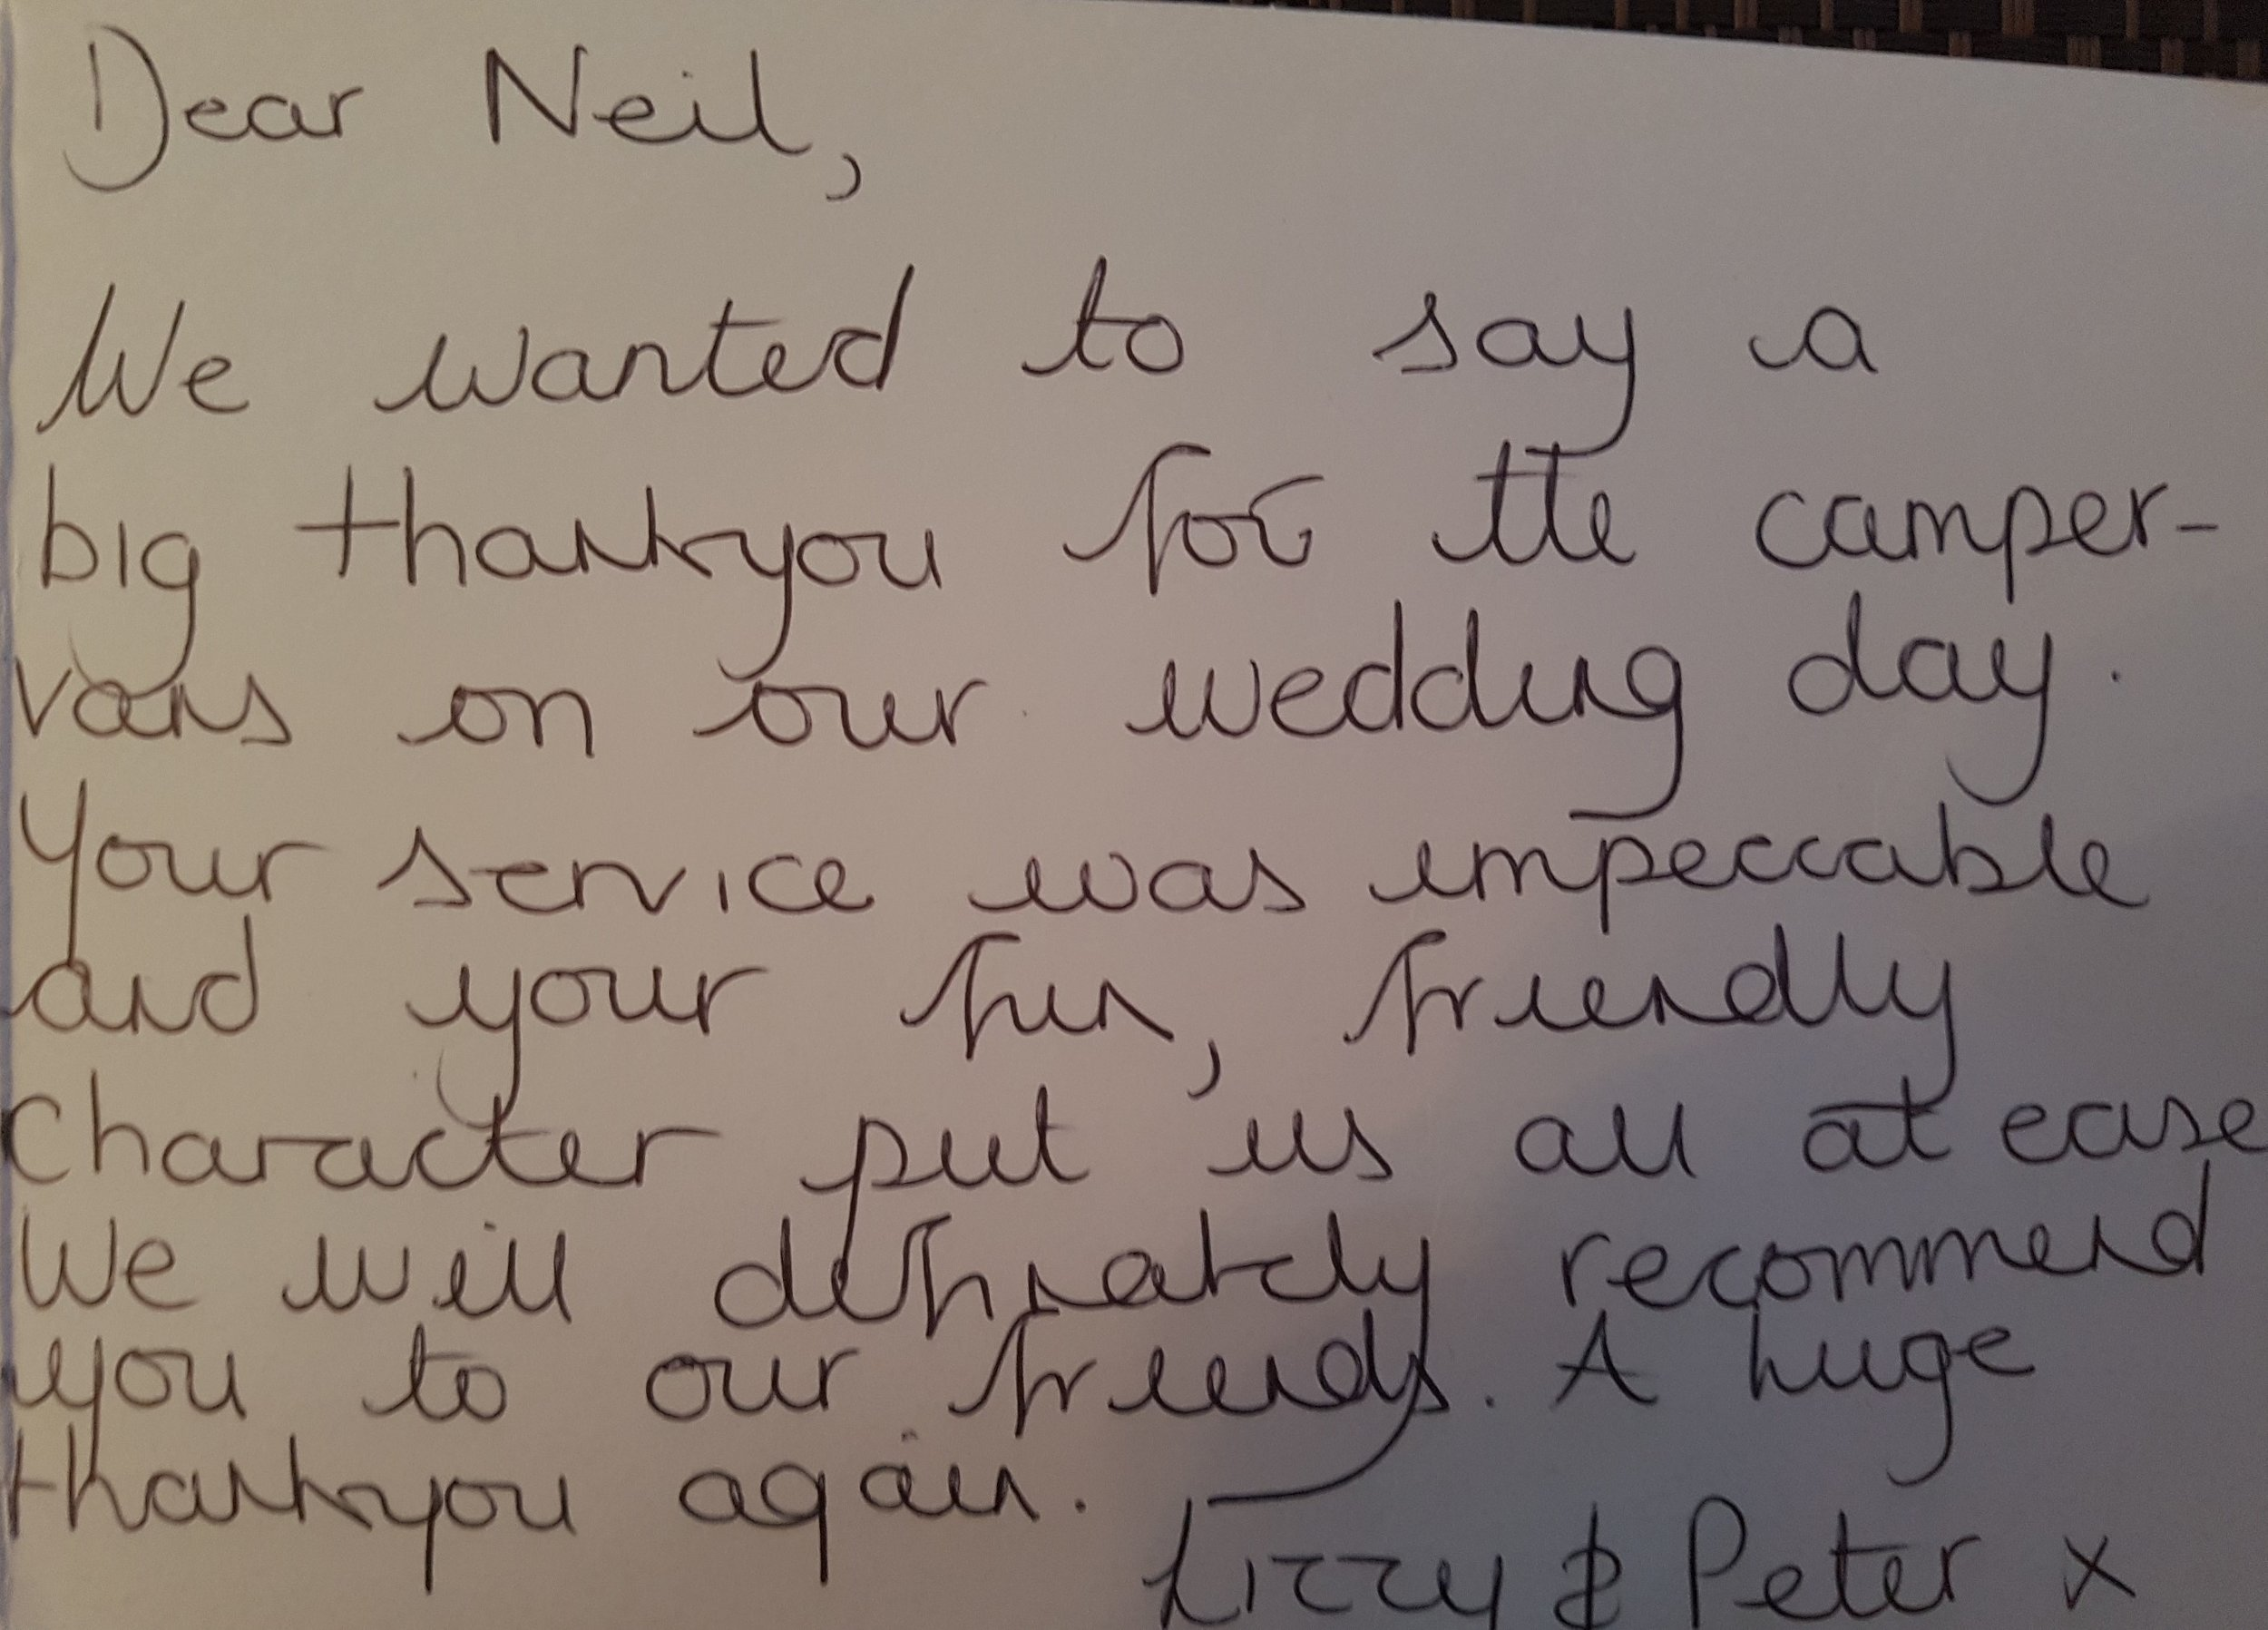 Thank you - Receiving cards like this from happy couples makes us all the more happy to be a part of your day, we're so glad you enjoyed the comfort and charm of the Campervans (and their drivers) and hope you had a fantastic day.We wish you both a very happy future together.